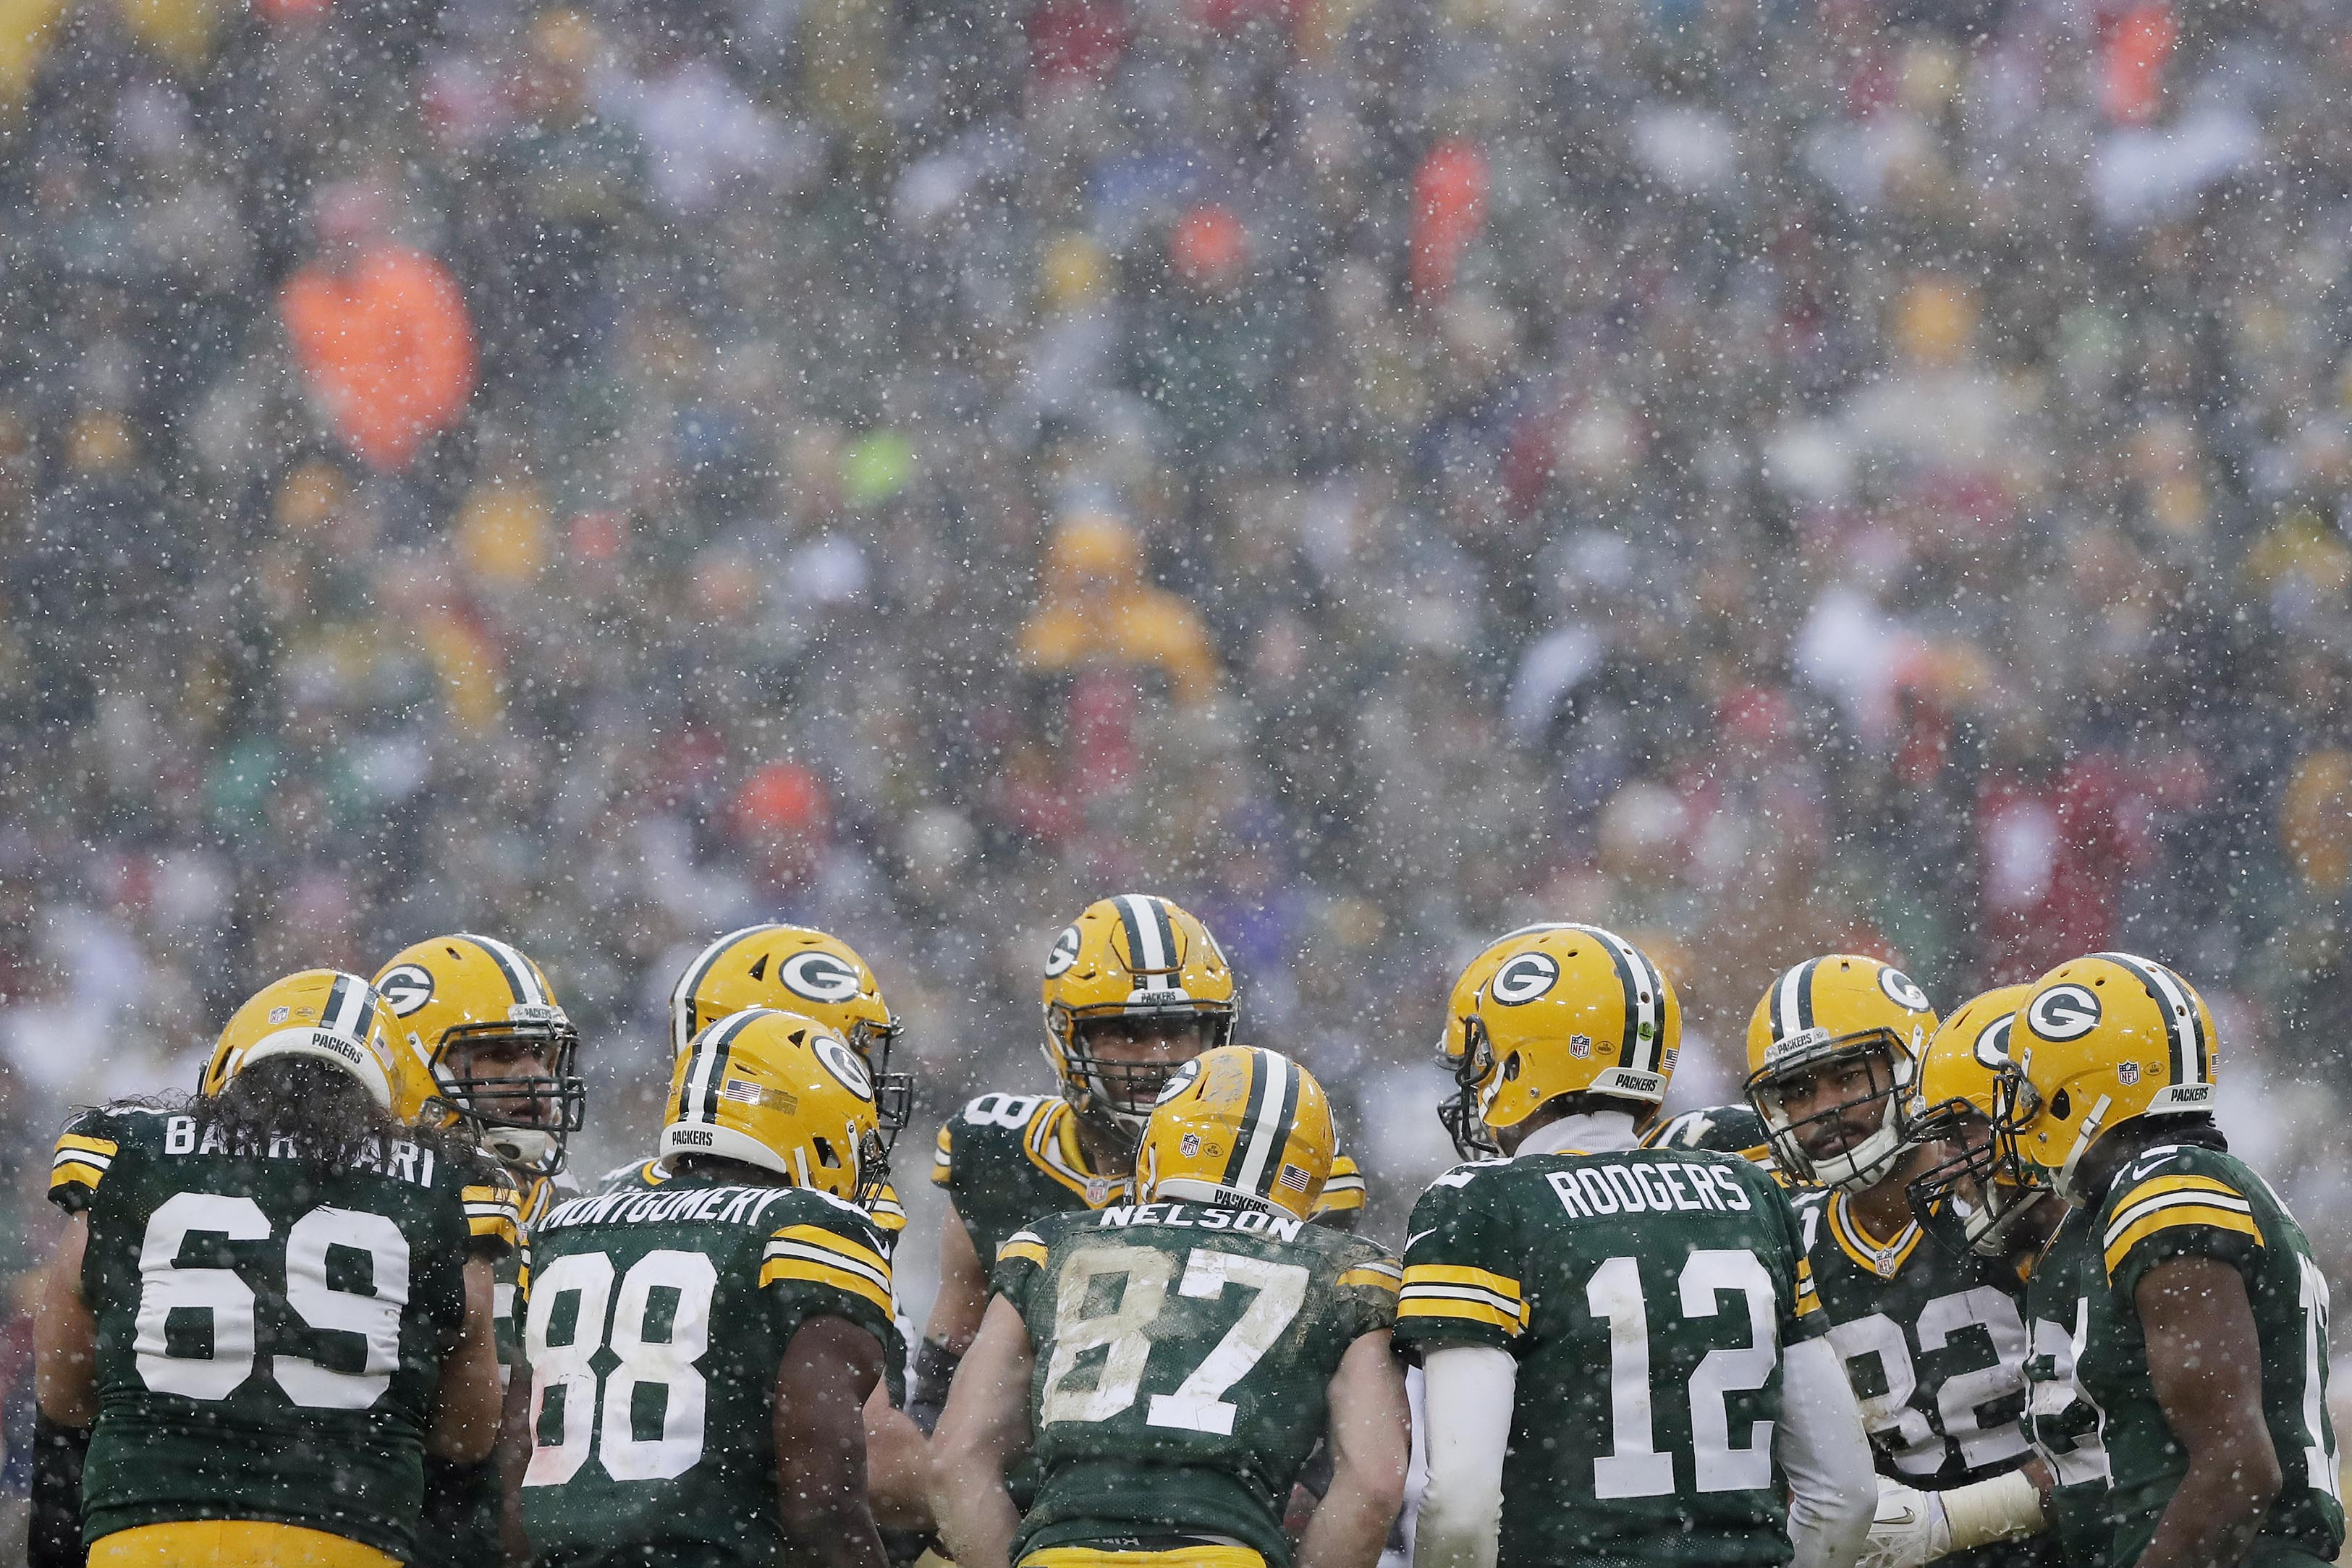 9725175-nfl-houston-texans-at-green-bay-packers